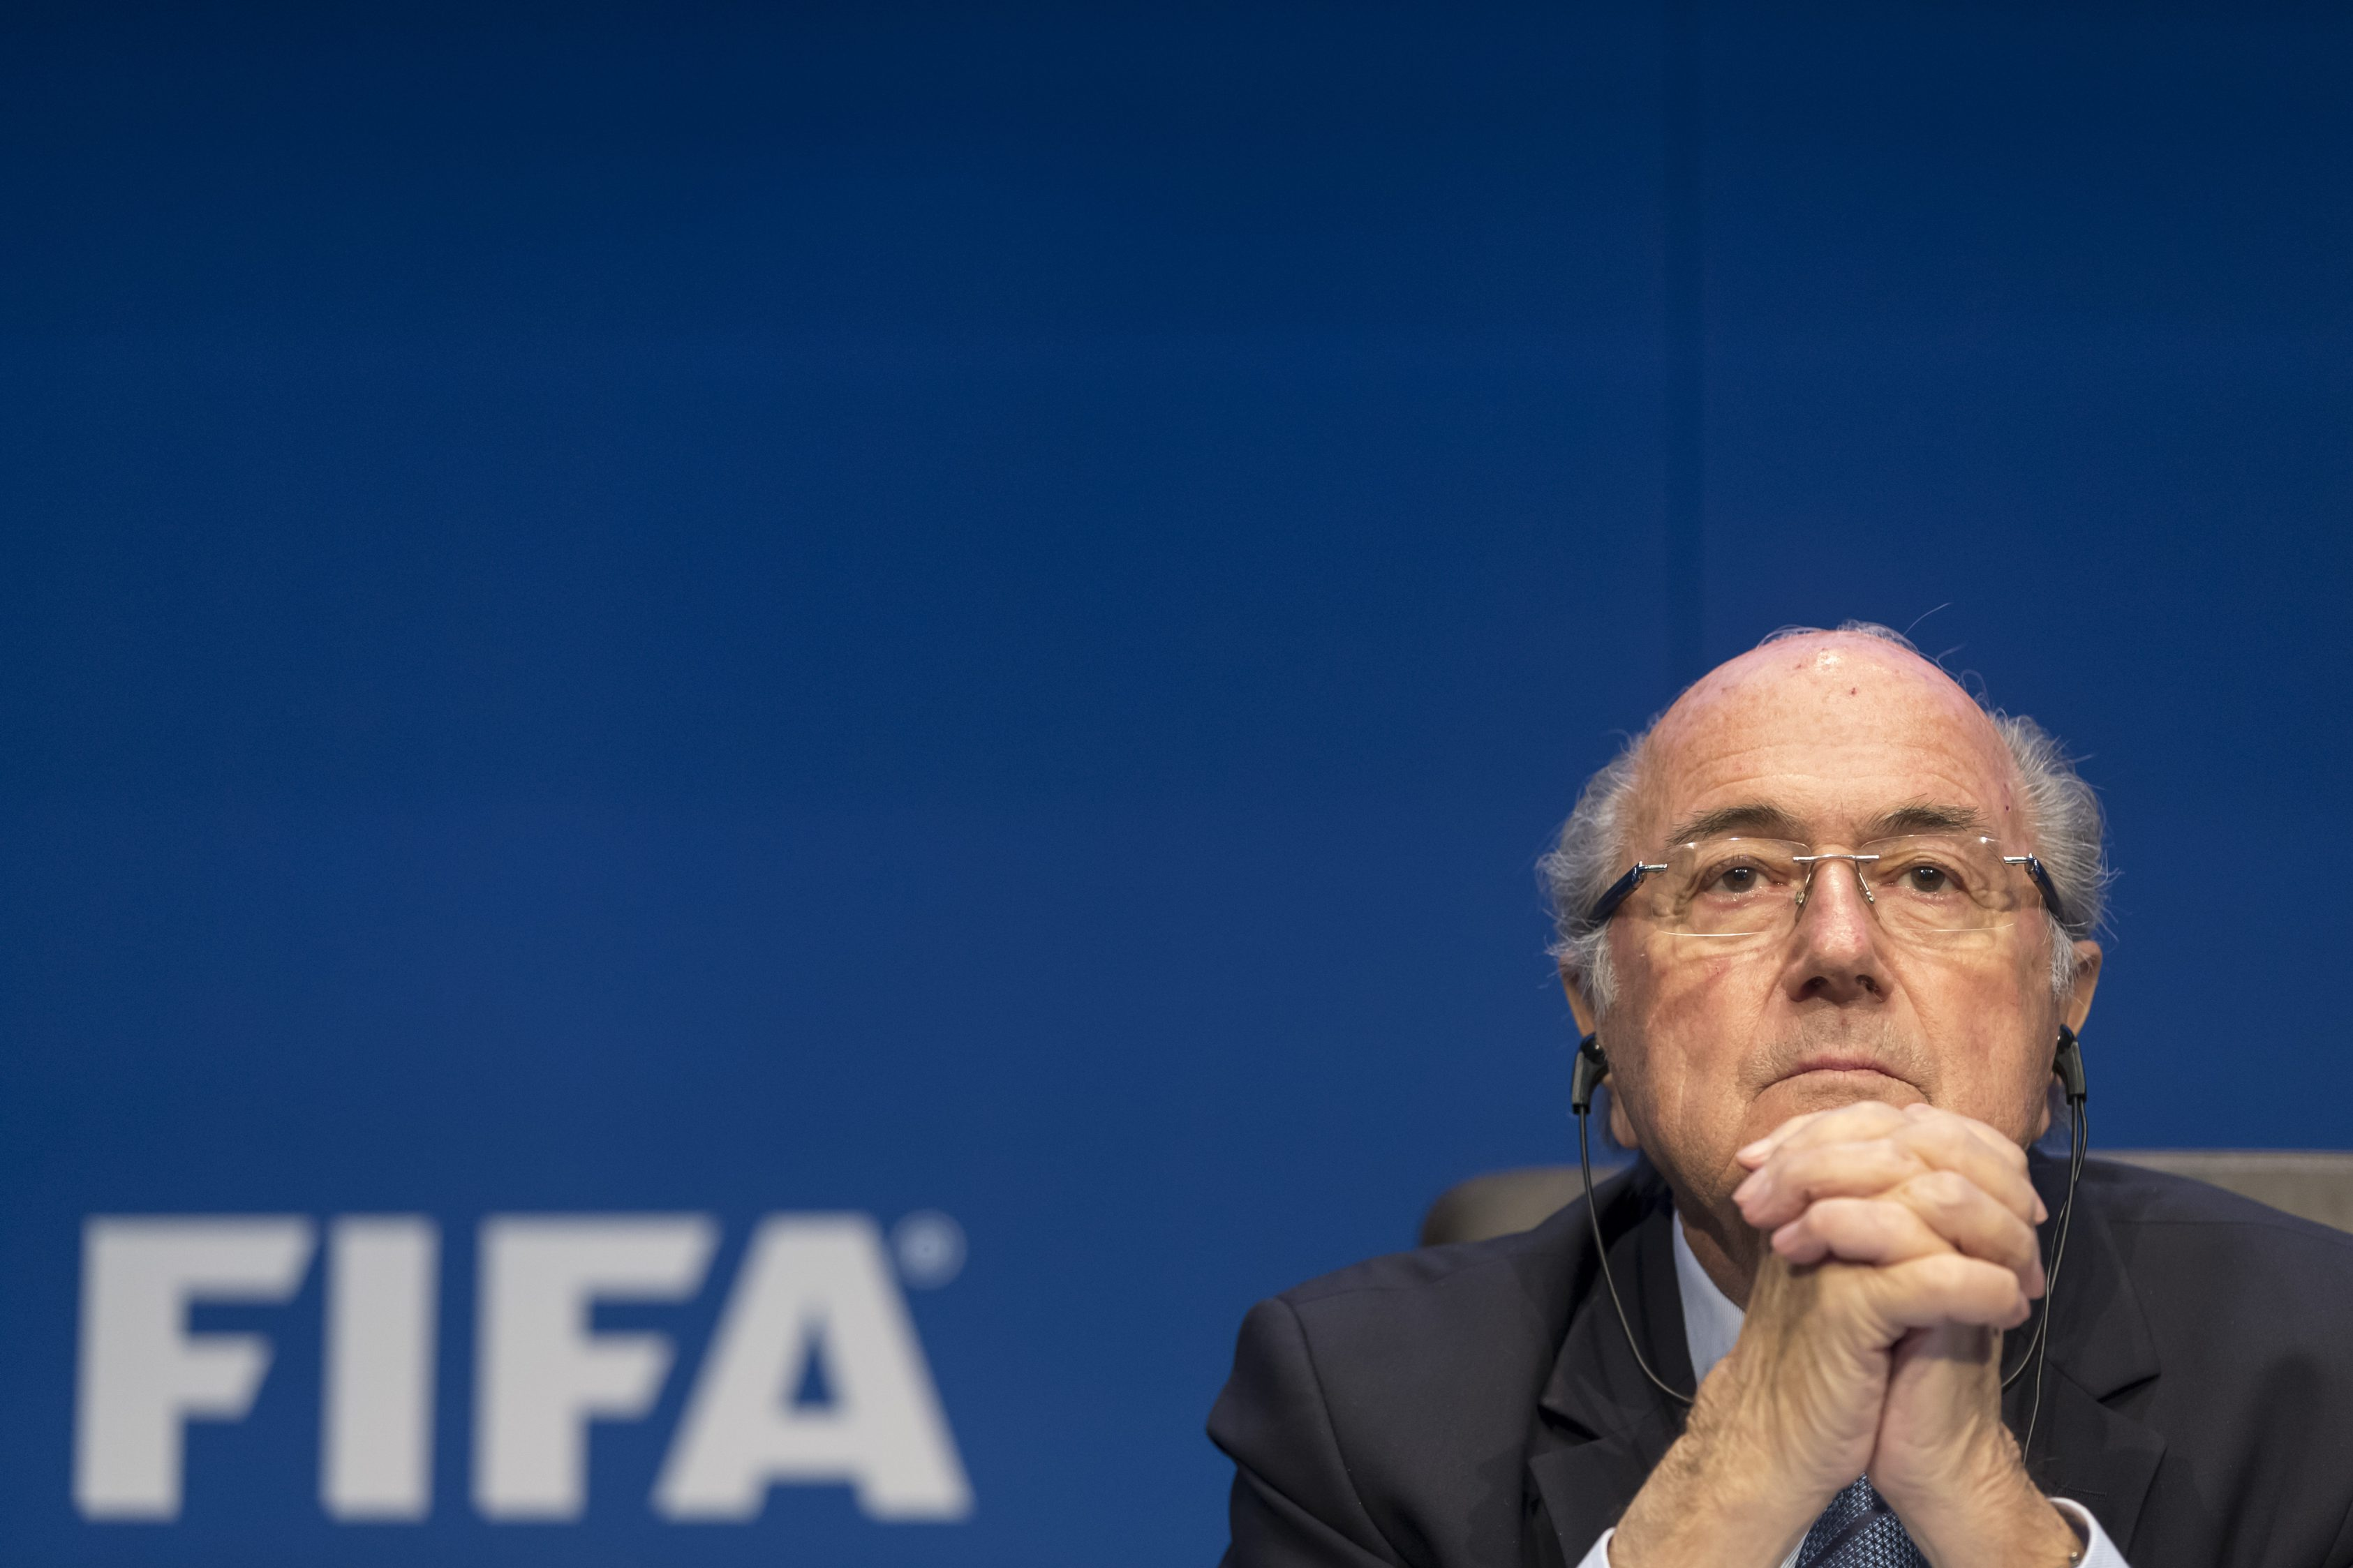 FIFA President Sepp Blatter talks to the media during a news conference in Zurich, Switzerland.